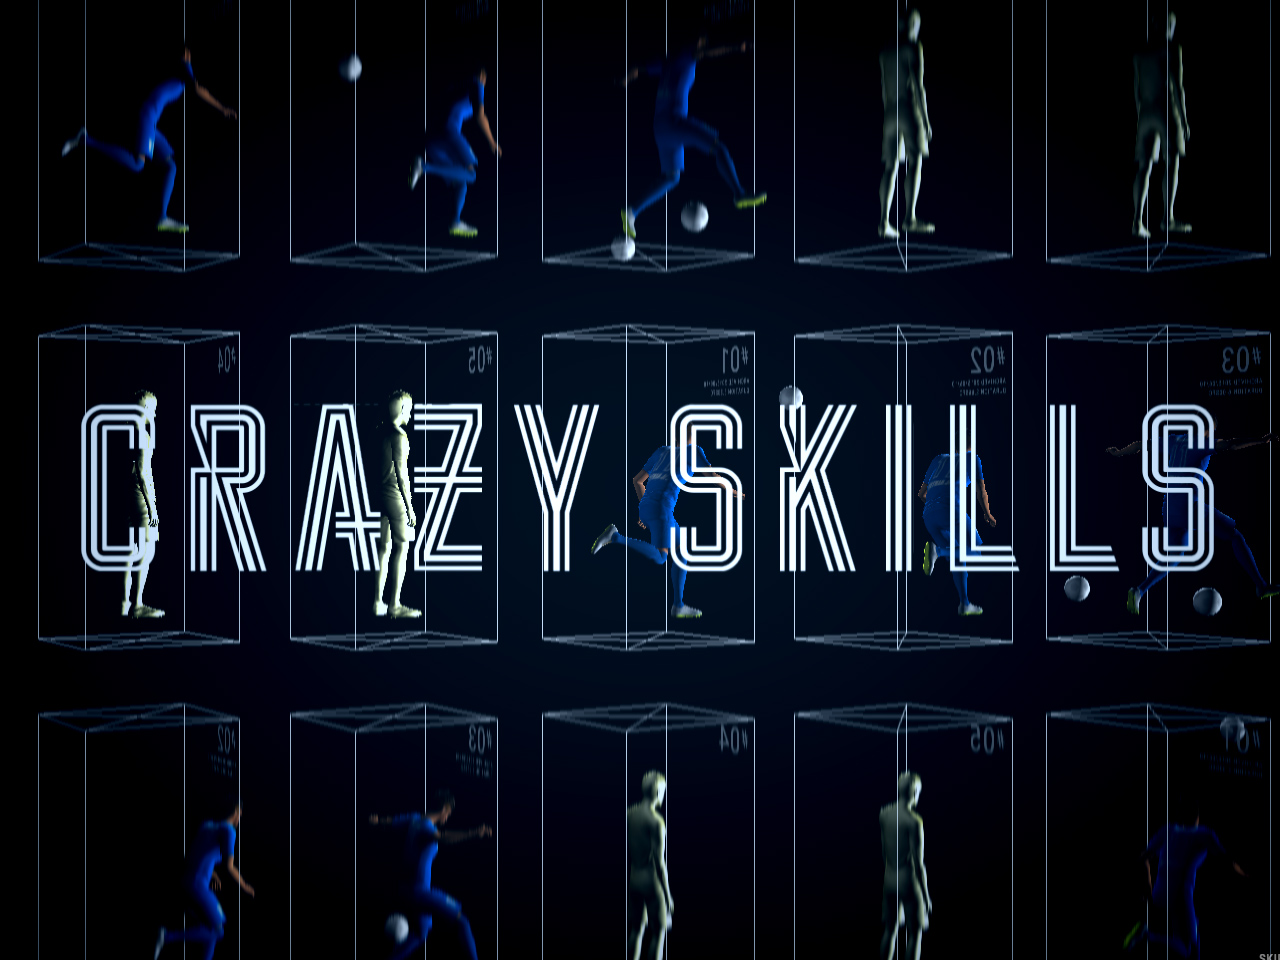 Neymar Jr. CRAZY SKILLS | Panasonic